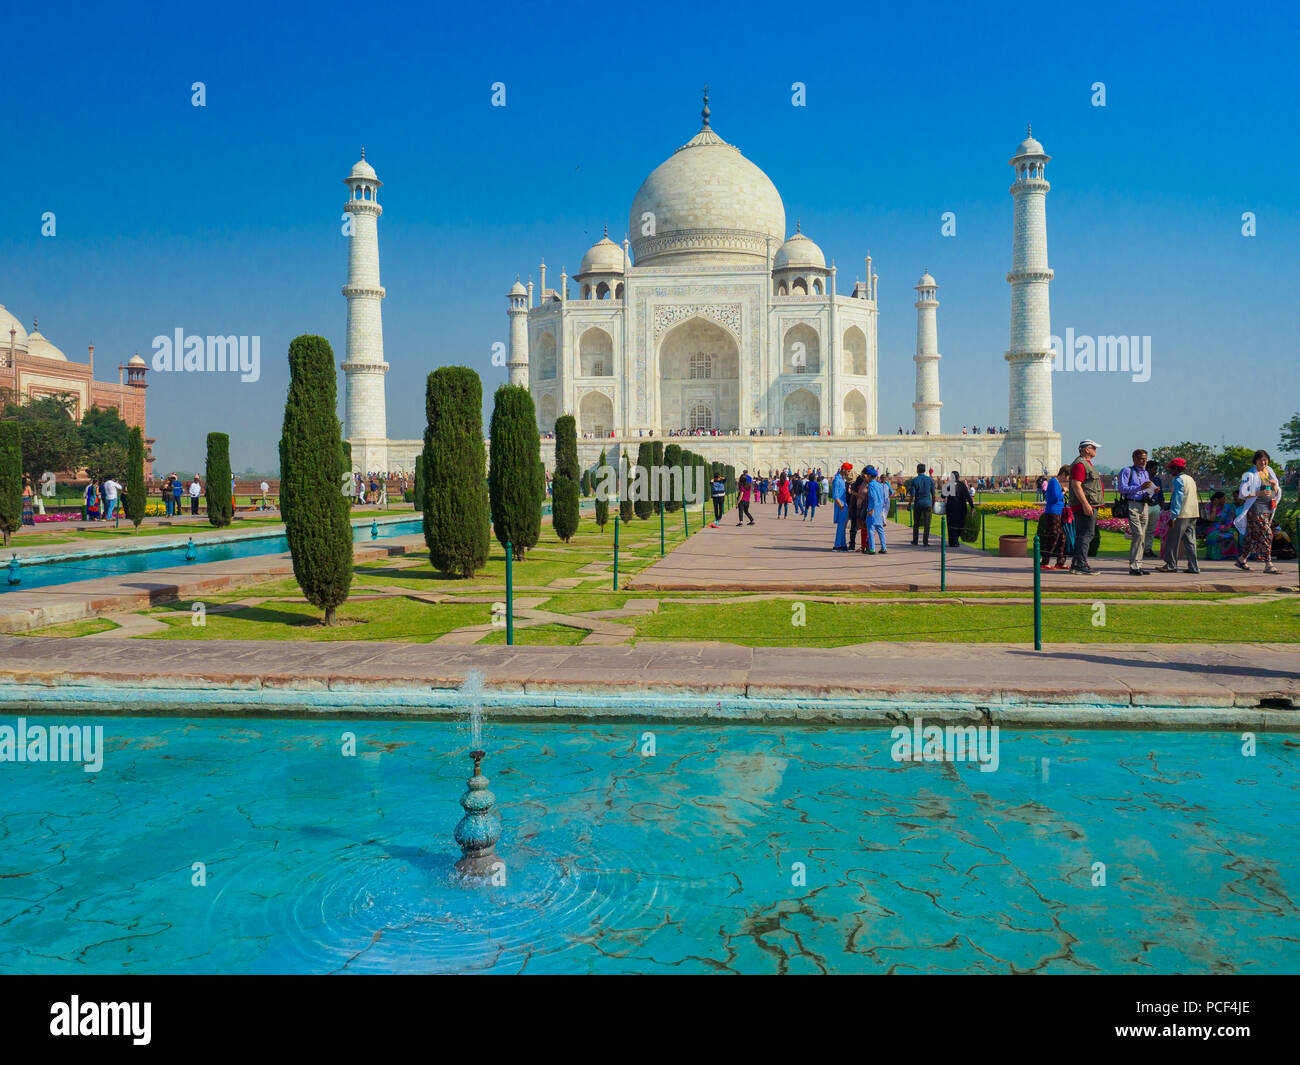 Tourists visiting the Taj Mahal, the ivory-white marble mausoleum in the city of Agra, Uttar Pradesh, India. - Stock Image